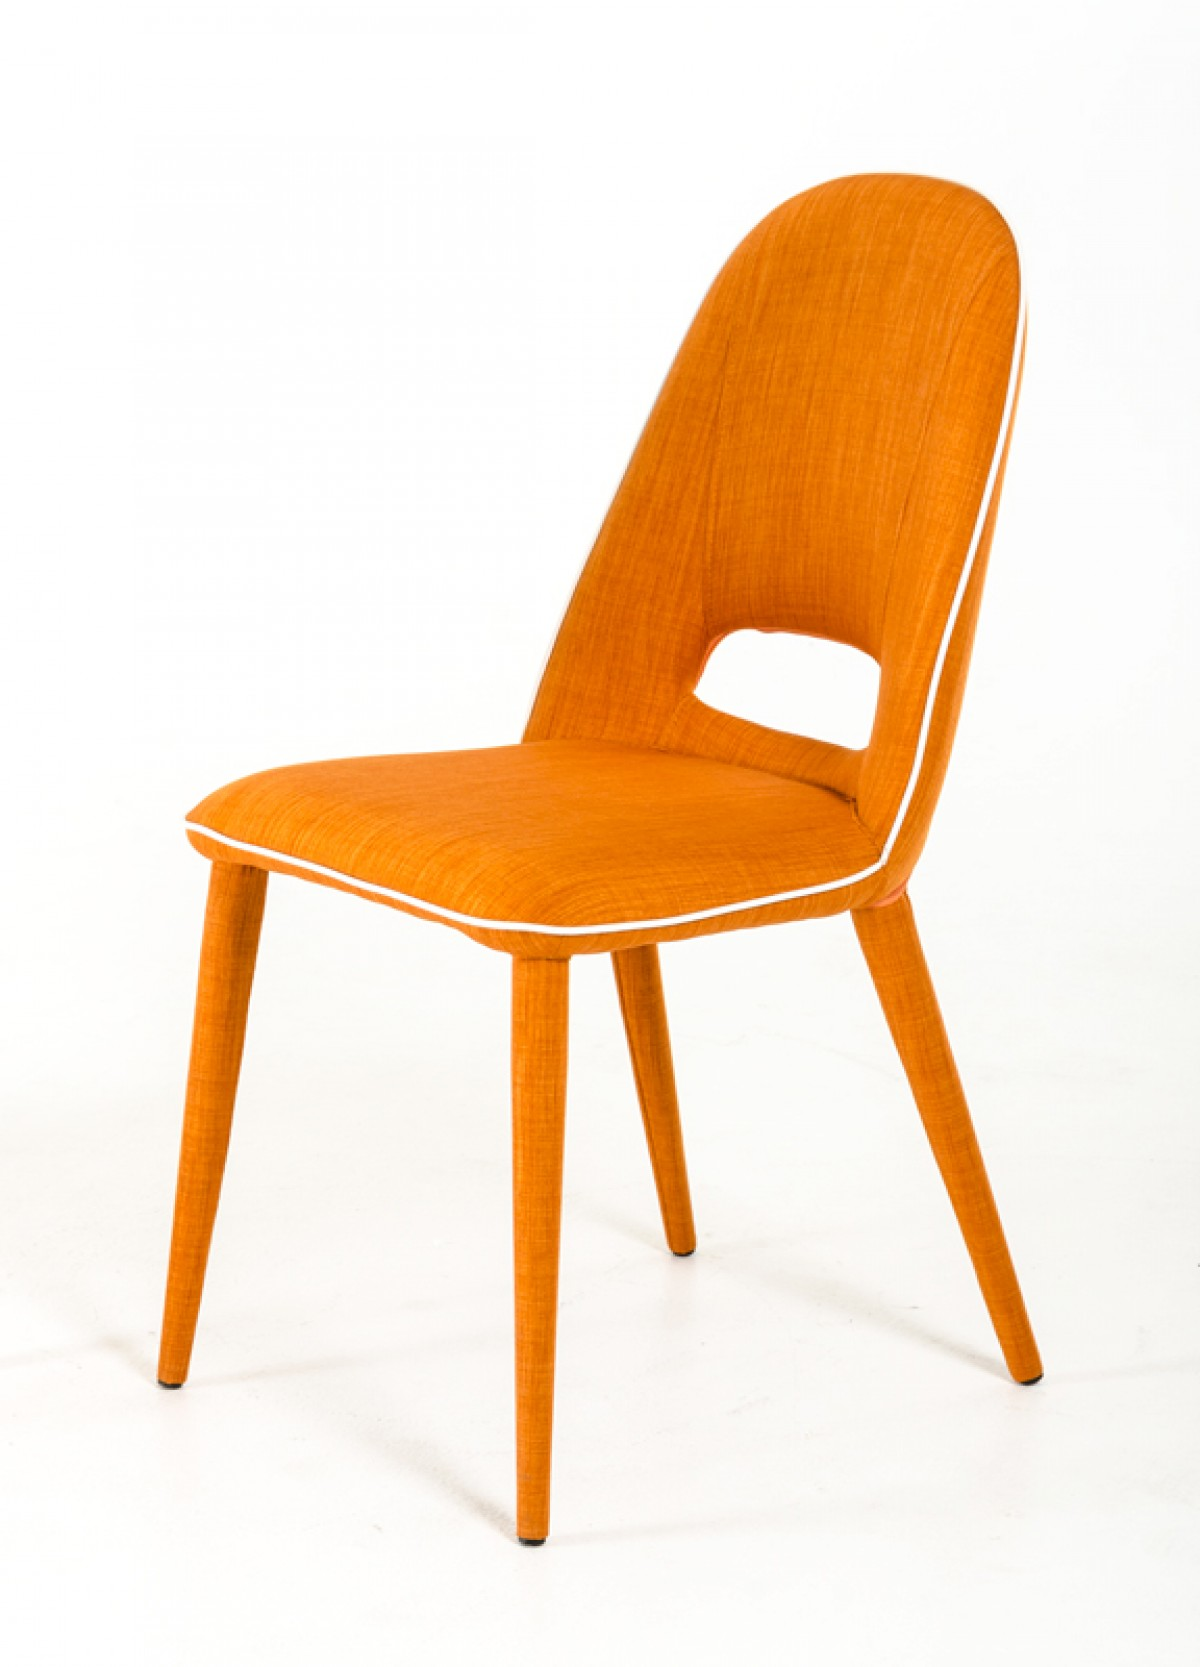 kenneth orange fabric dining chairs  orange dining chair - buy the kenneth orange fabric dining chairs at advancedinteriordesignscom